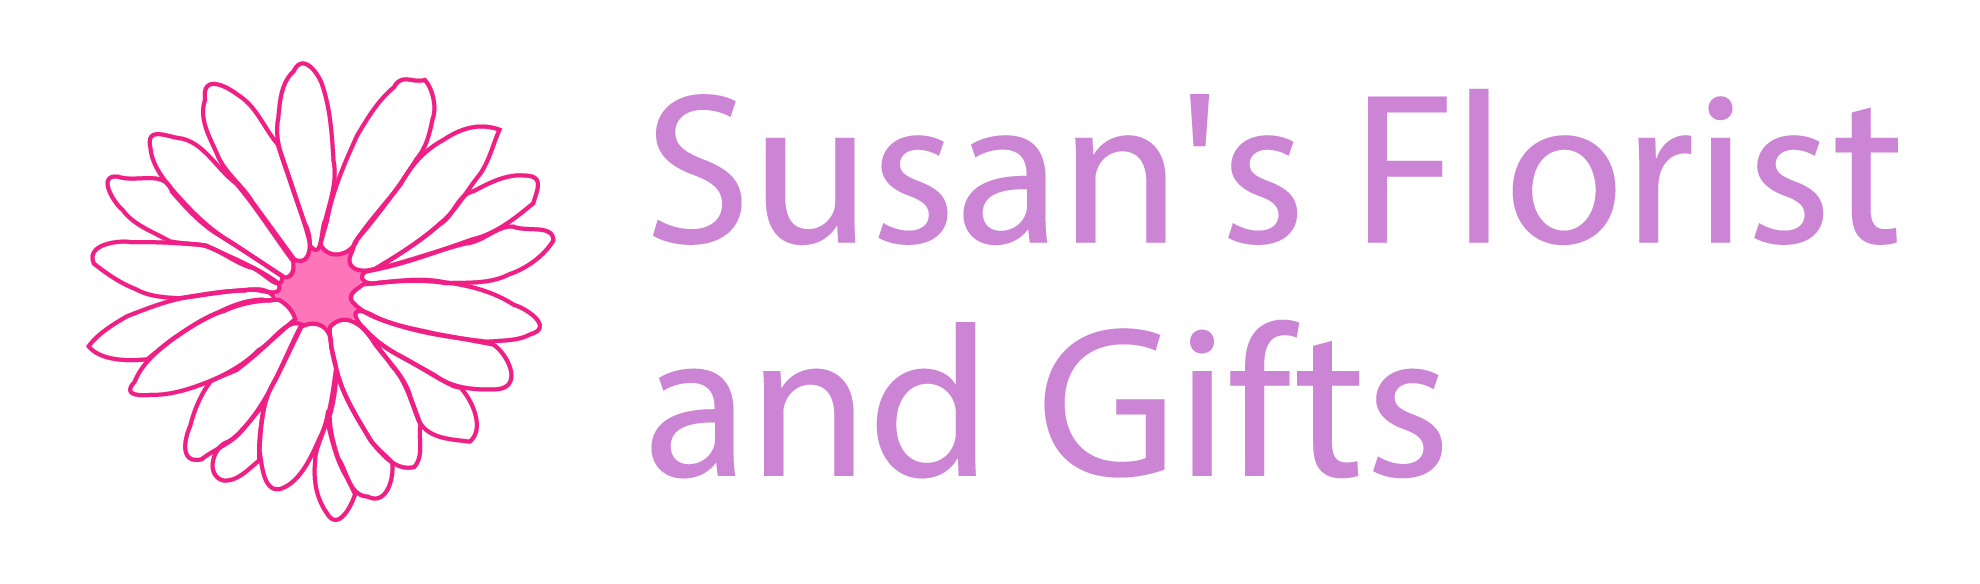 Susan's Florist and Gifts - Flower Delivery in Waterford Twp, MI